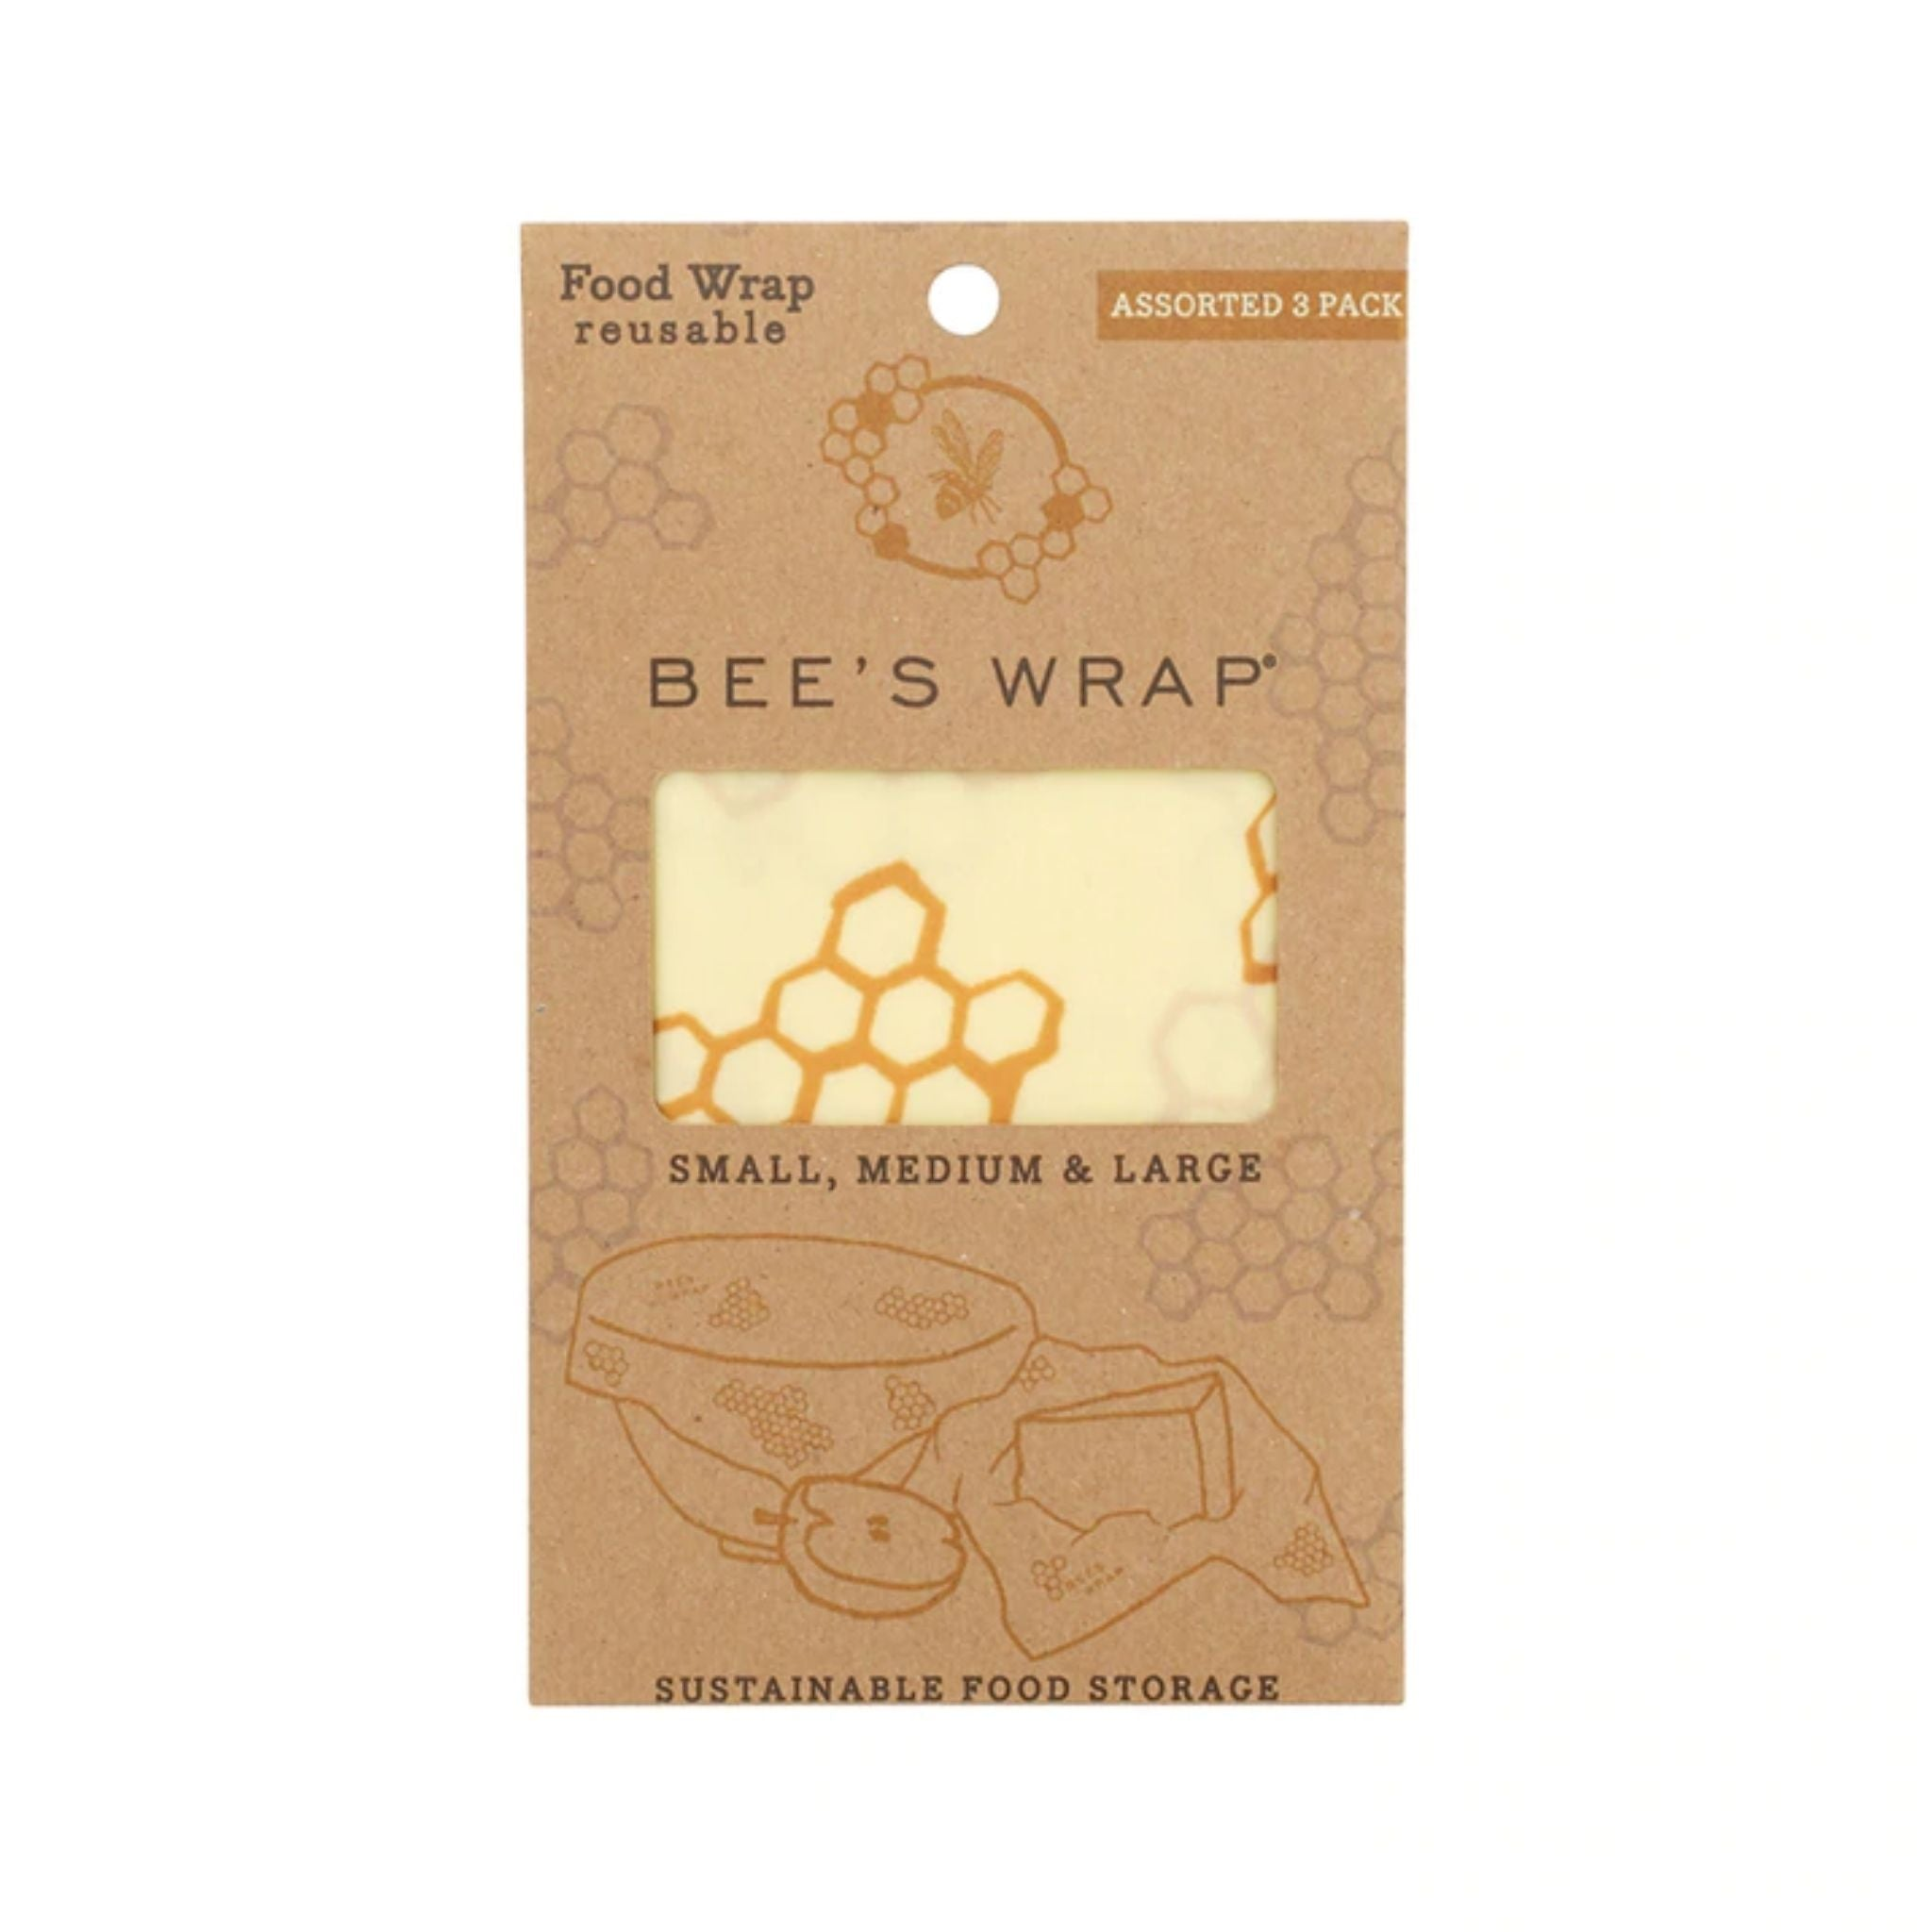 Bee's Wrap Assorted 3-Pack